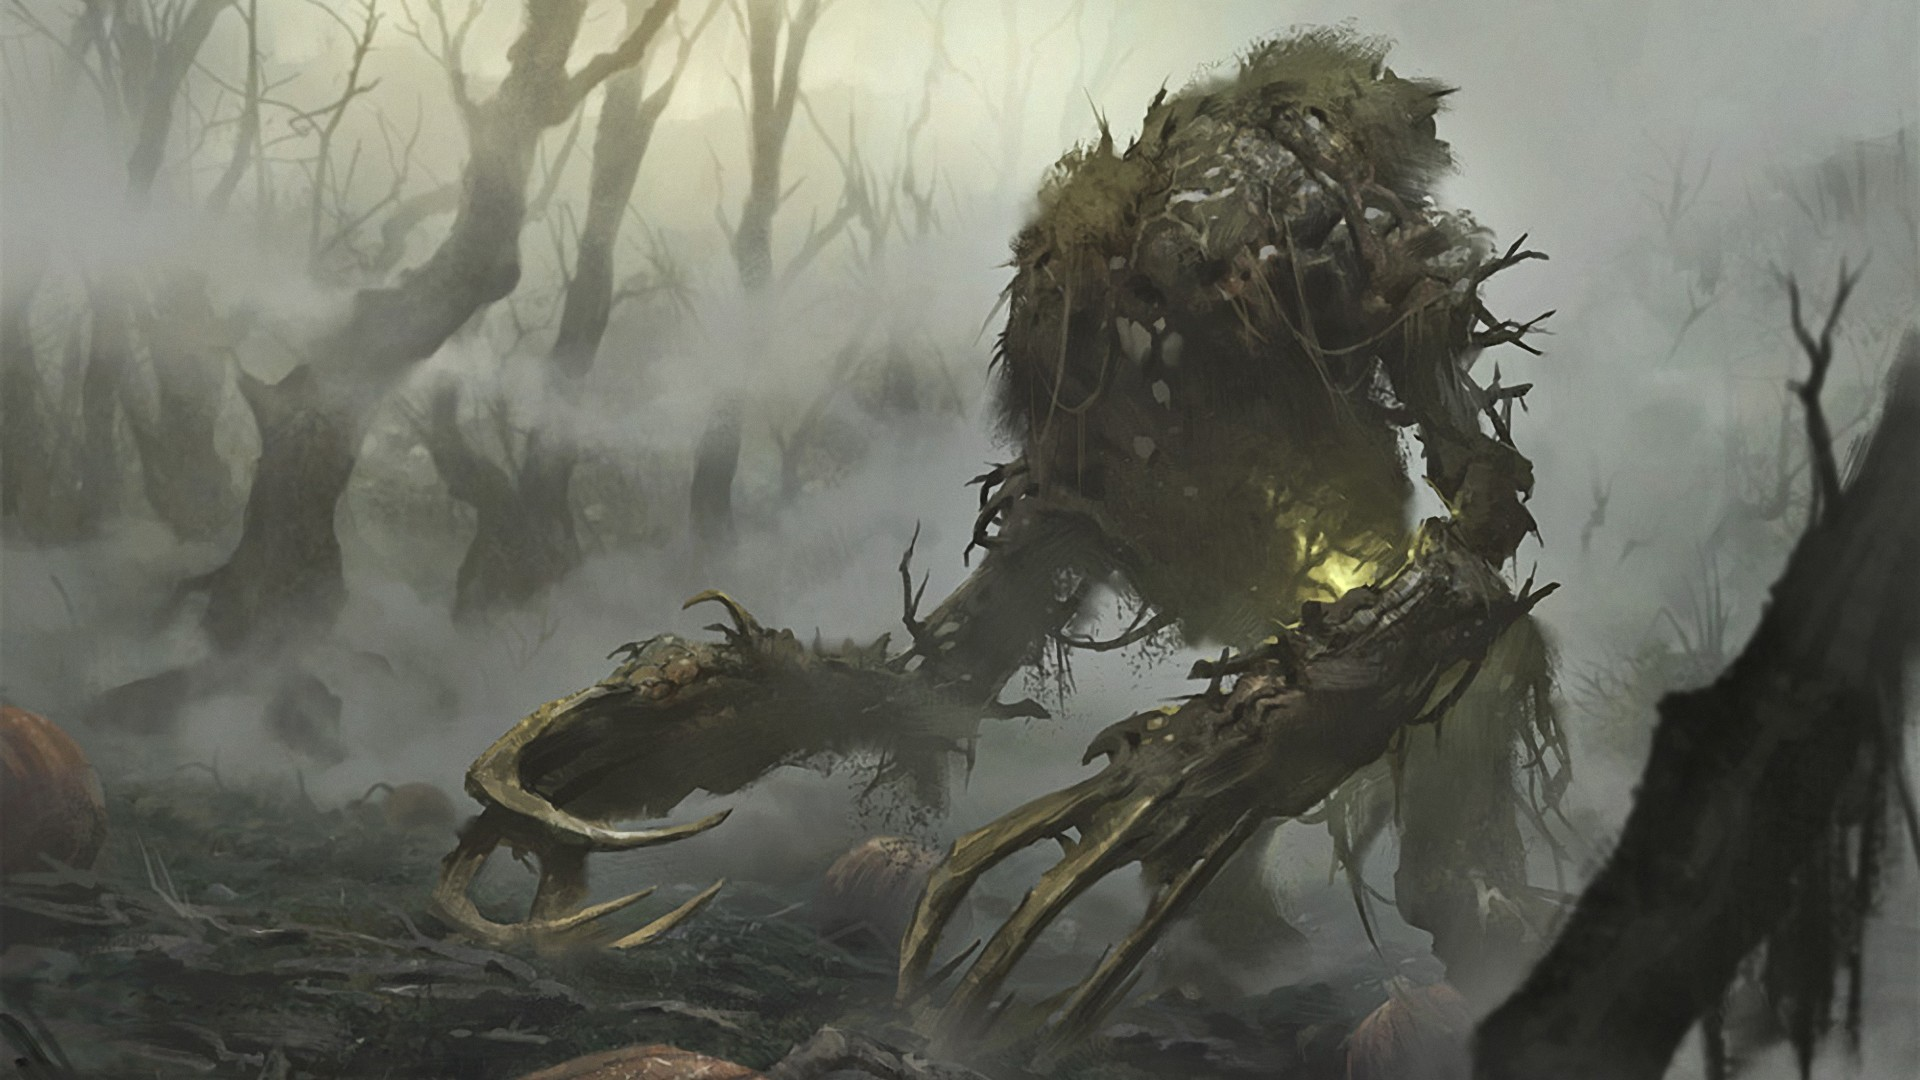 1920x1080 Fantasy Art Magic The Gathering Monsters Swamps ...